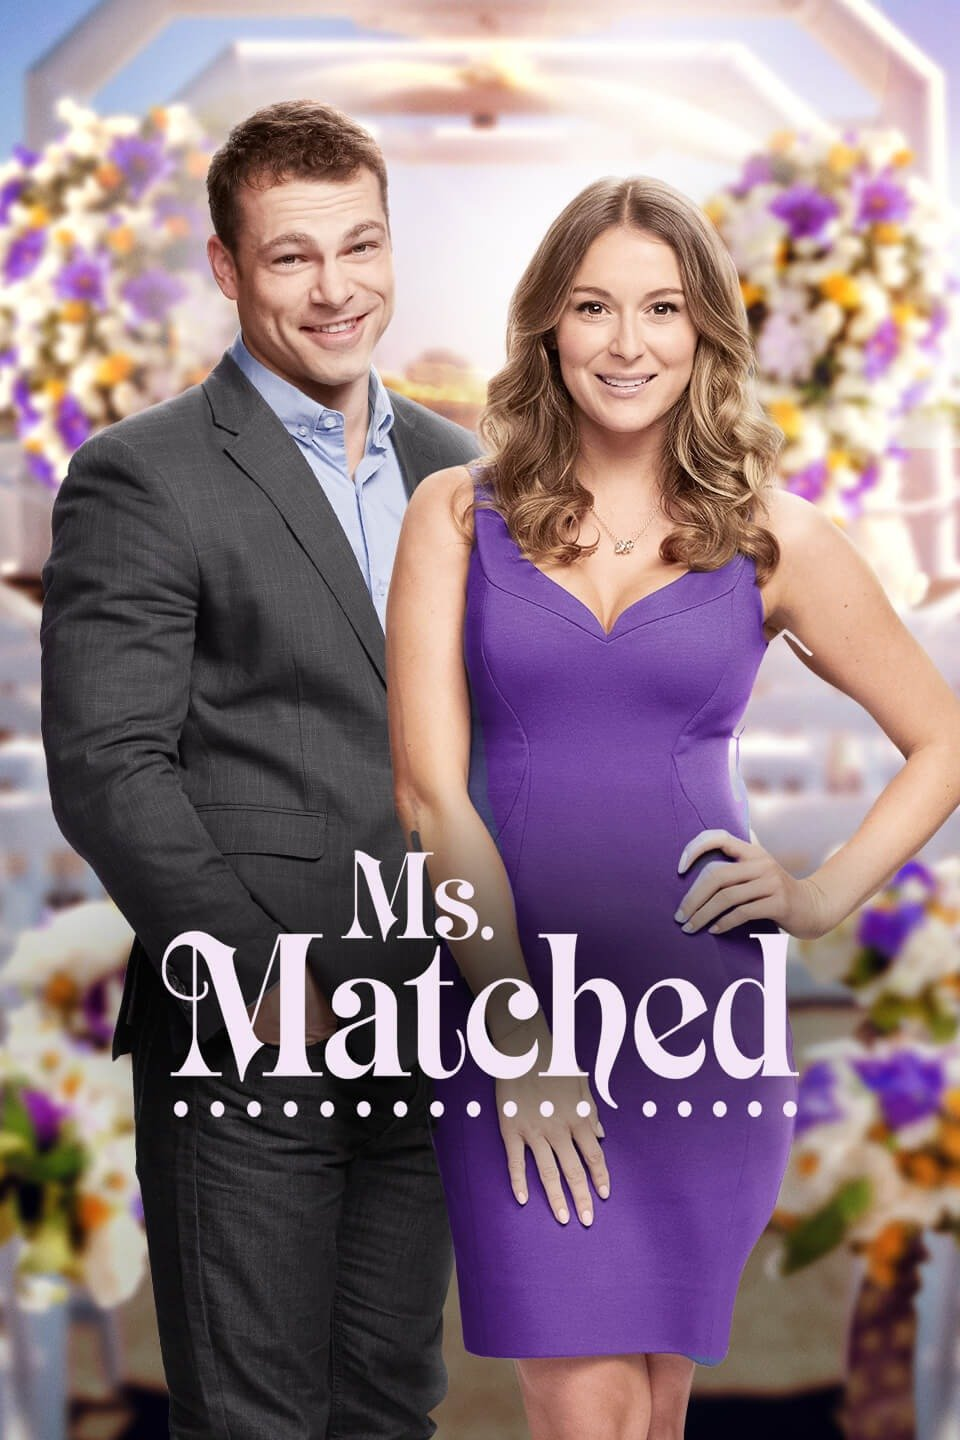 Ms. Matched (2016)/ A Prince For